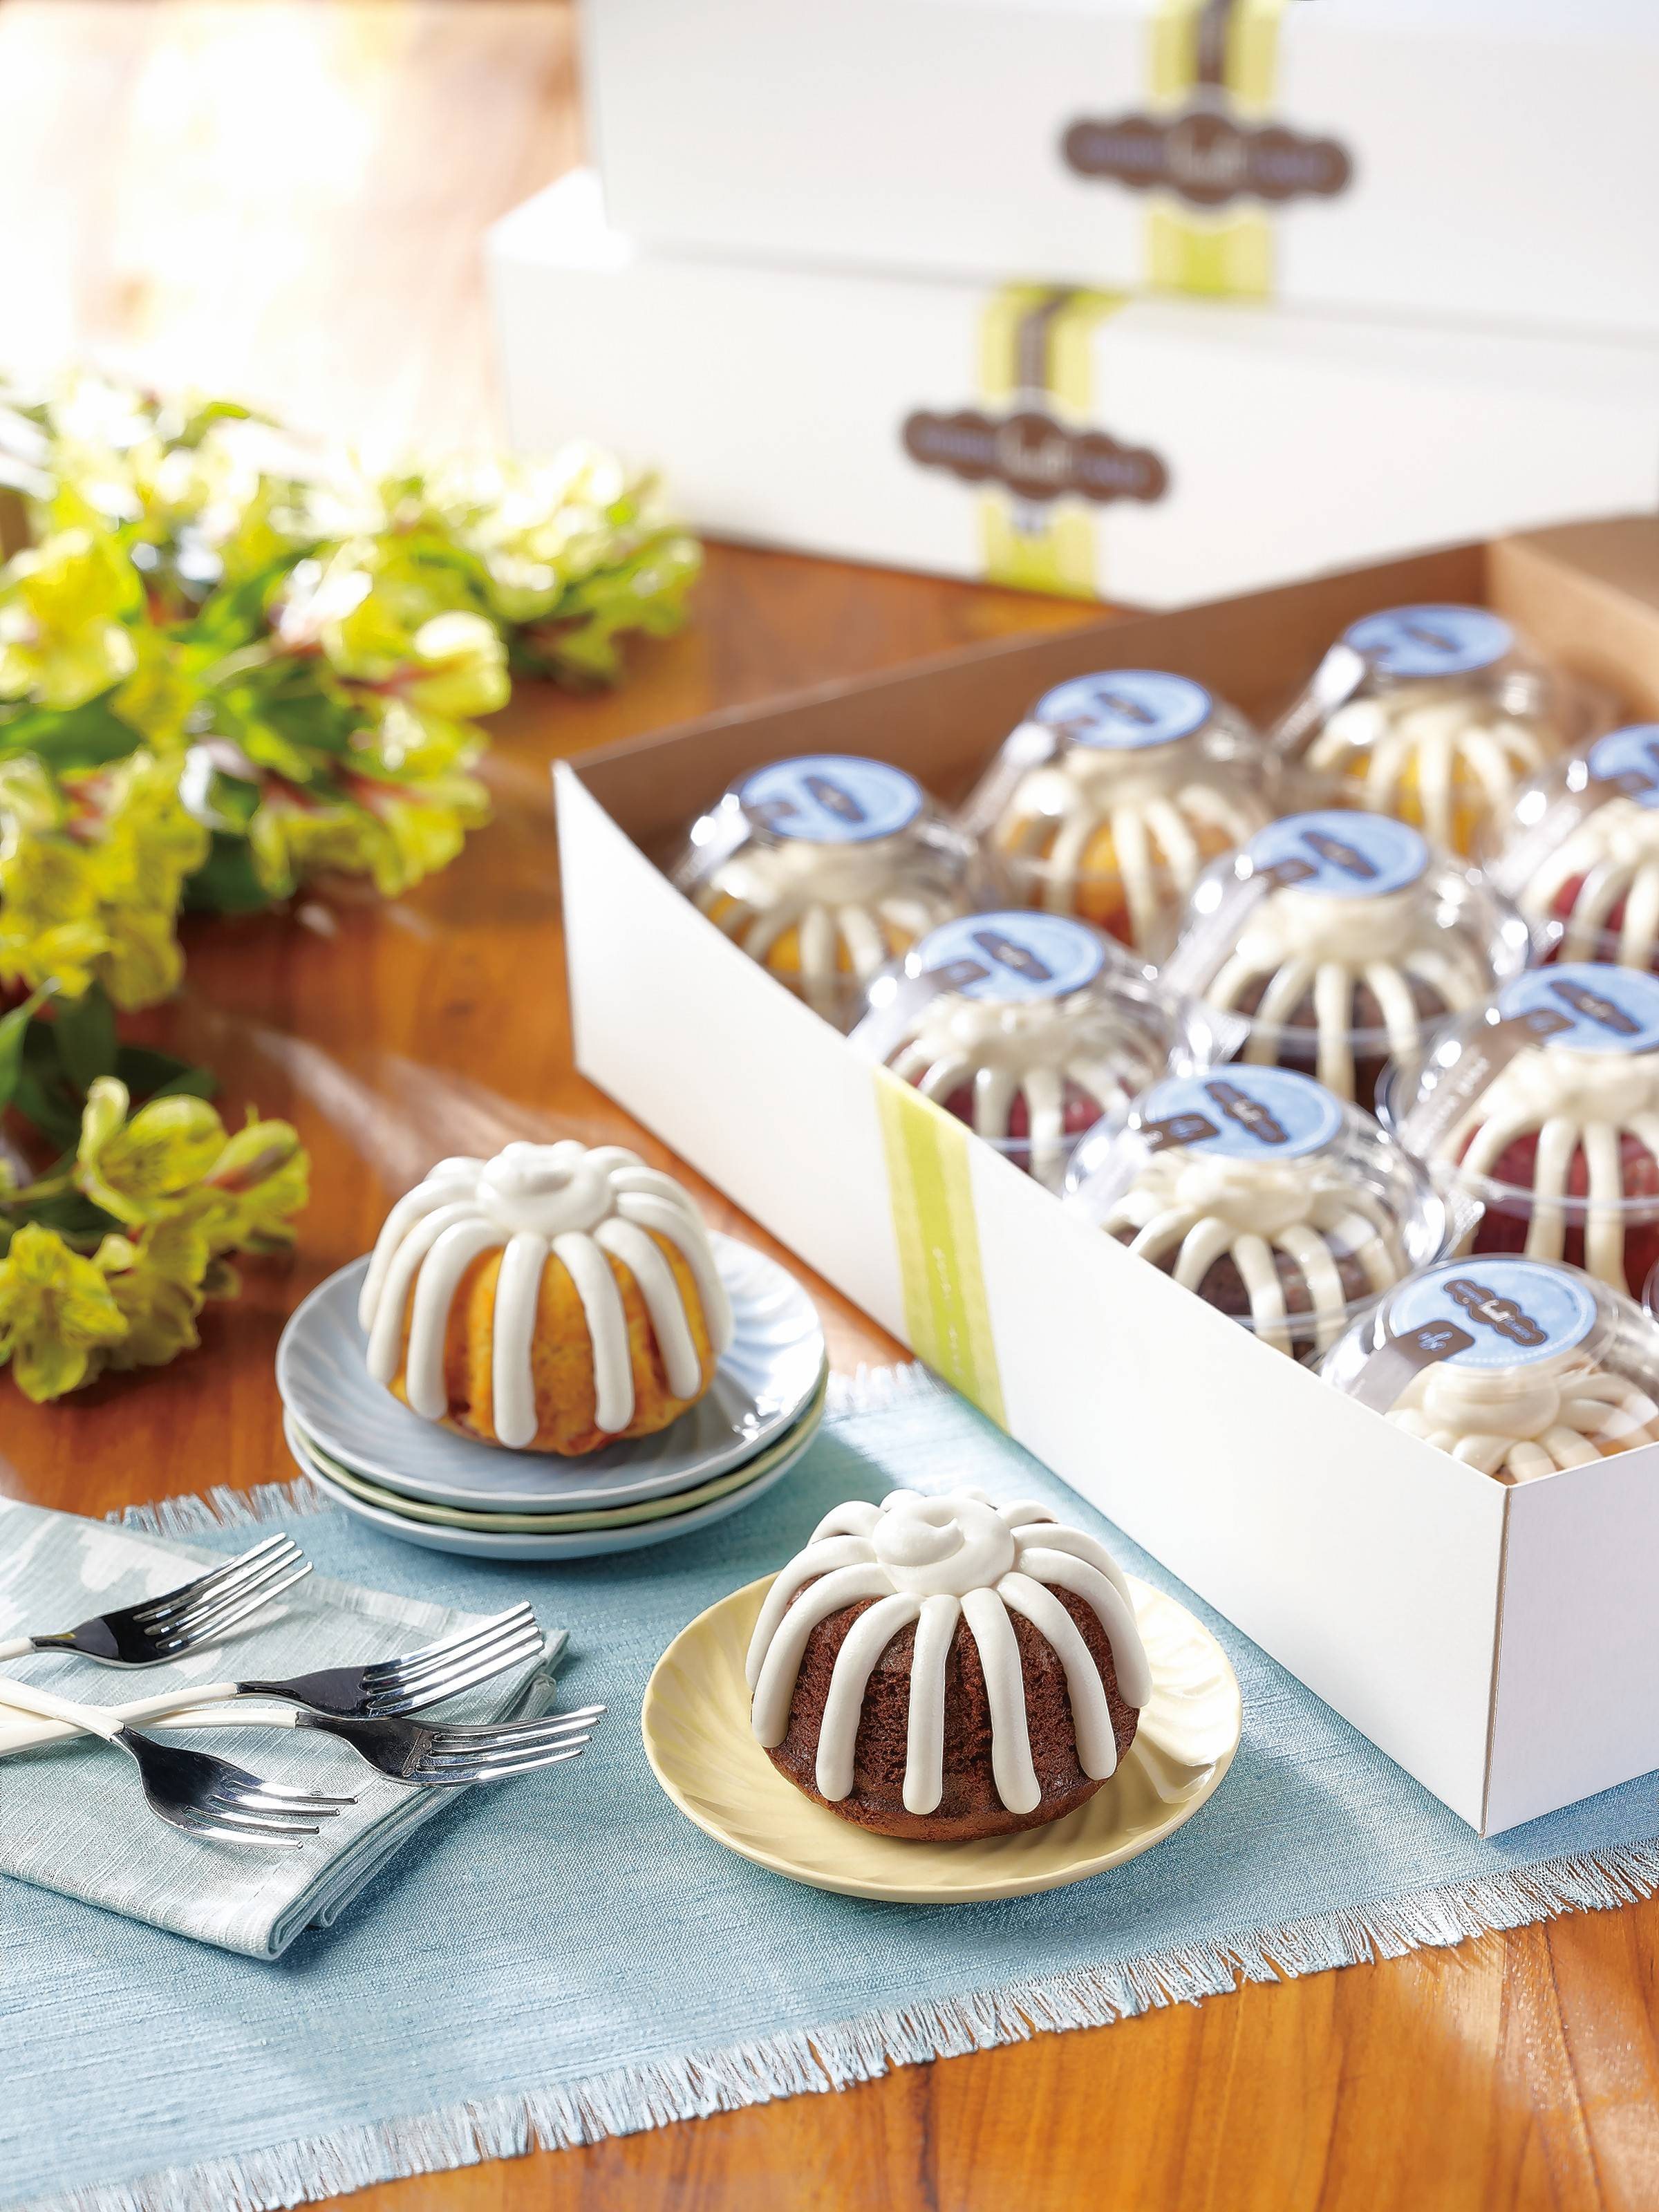 The owners of Nothing Bundt Cakes in Vernon Hills are planning events for the opening weekend.